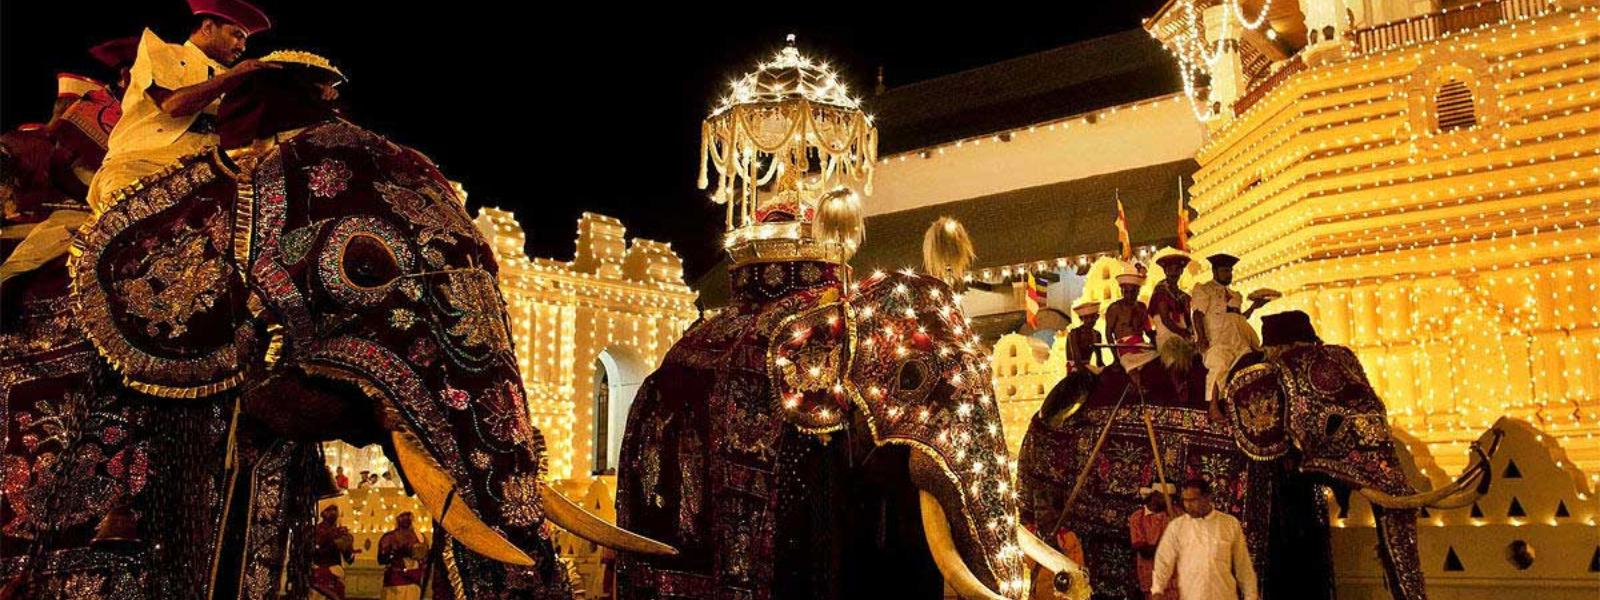 Asia's grandest pageant-Esala Perahera concluded today